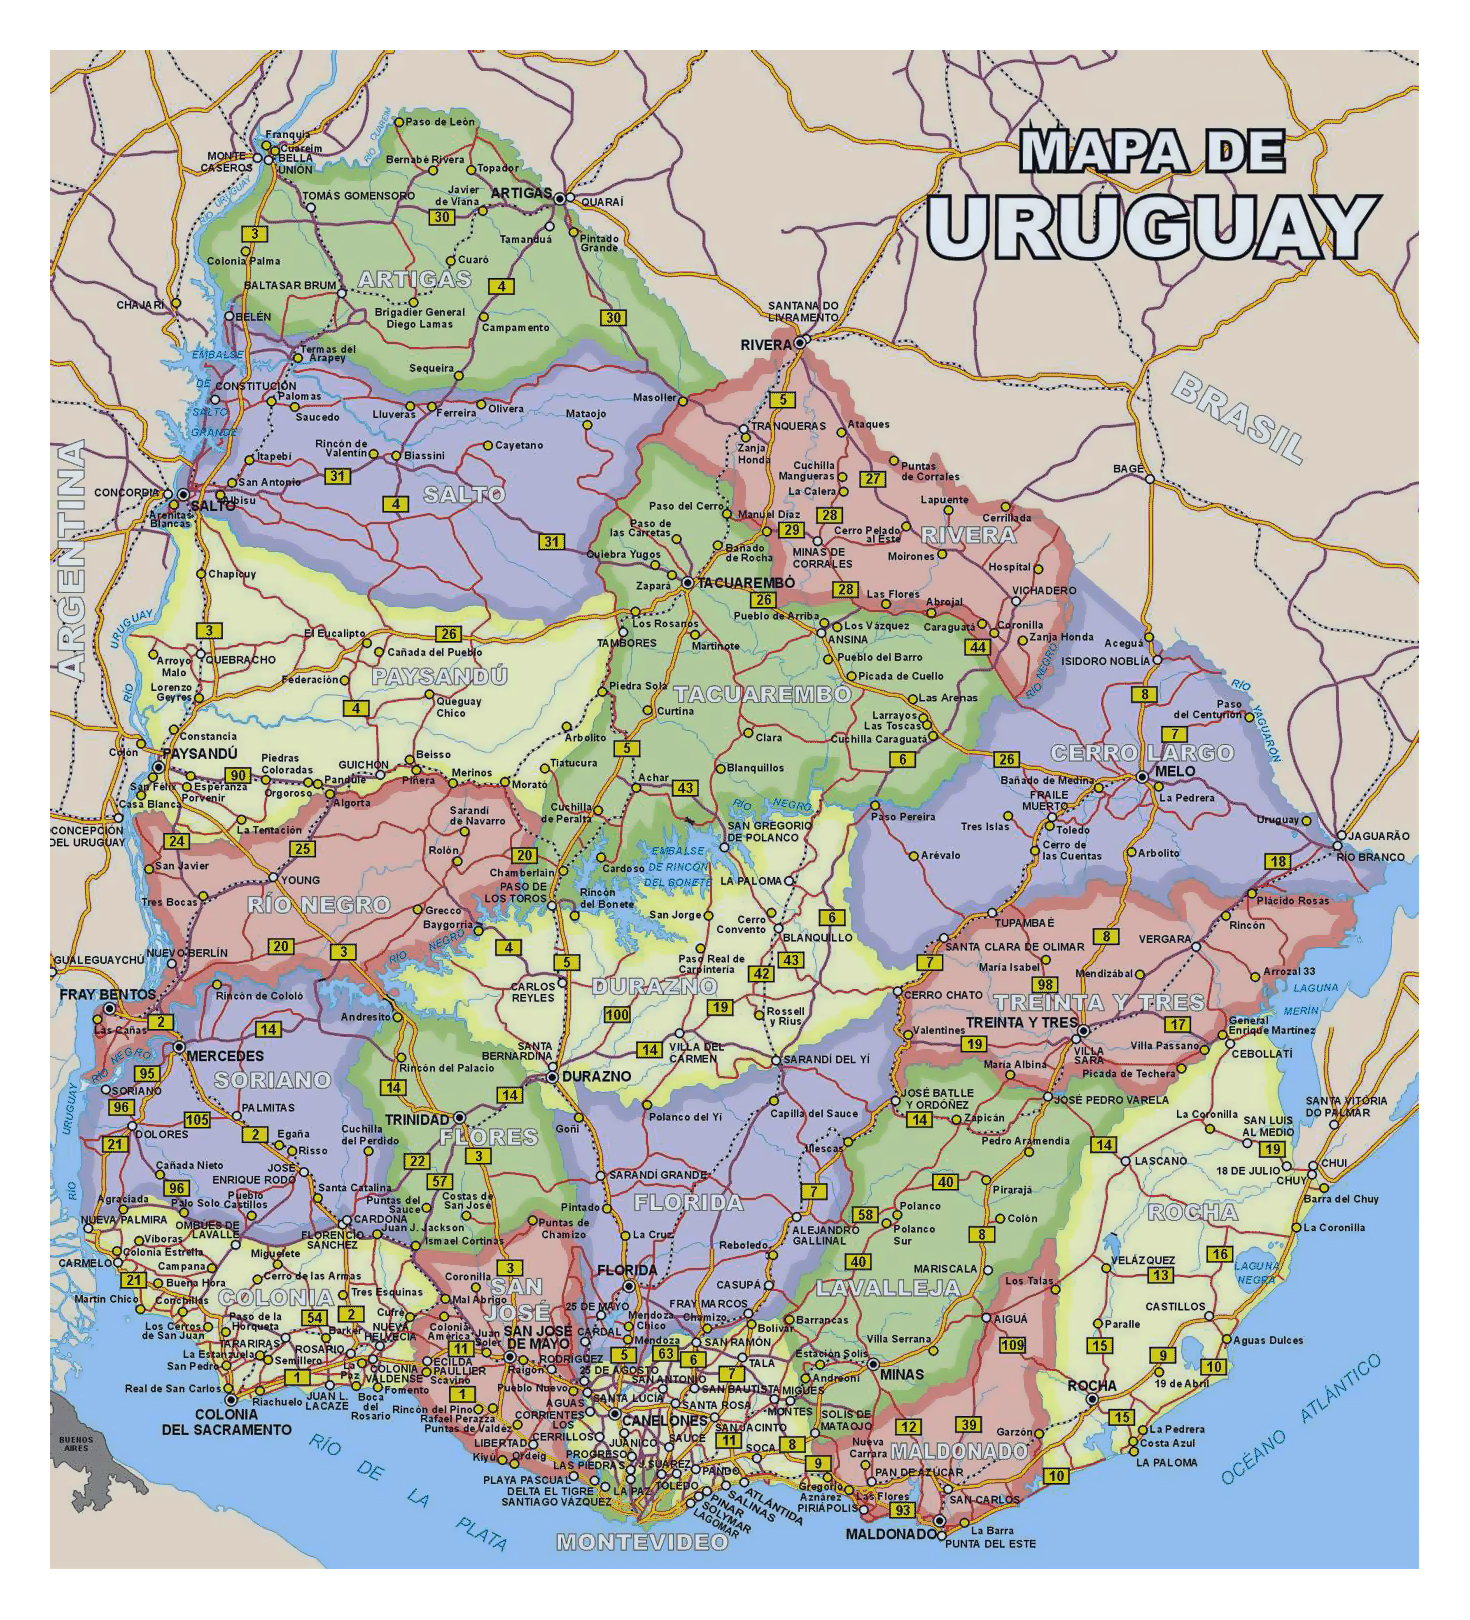 Large Detailed Political And Administrative Divisions Map Of Uruguay With All Roads And Cities